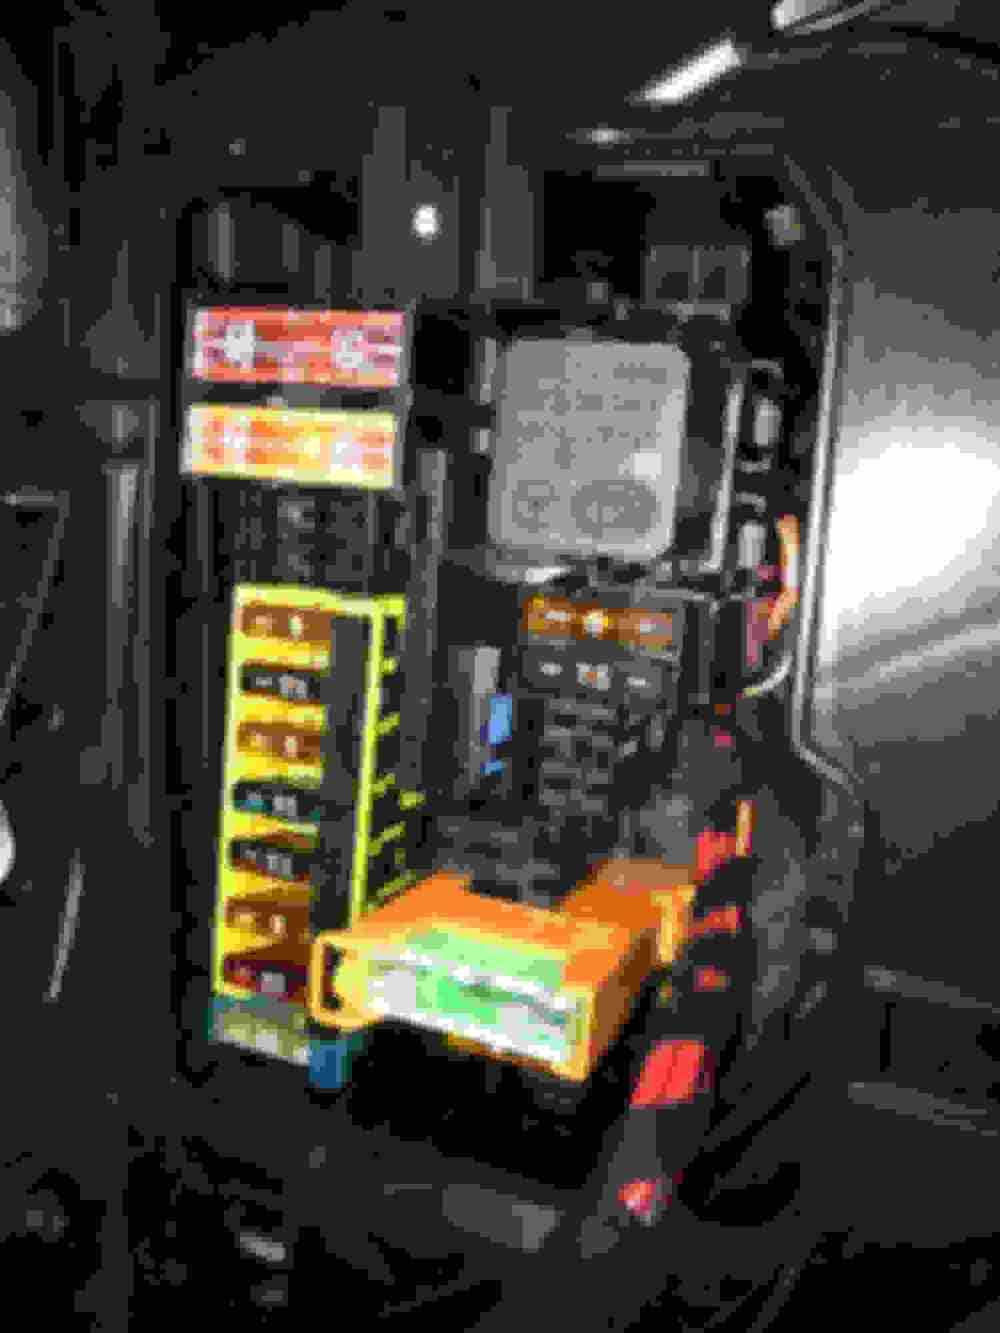 medium resolution of i suppose worst case i could tap a fuse in the passenger footwell if i know which fews were switced with acc power pics are attached for reference